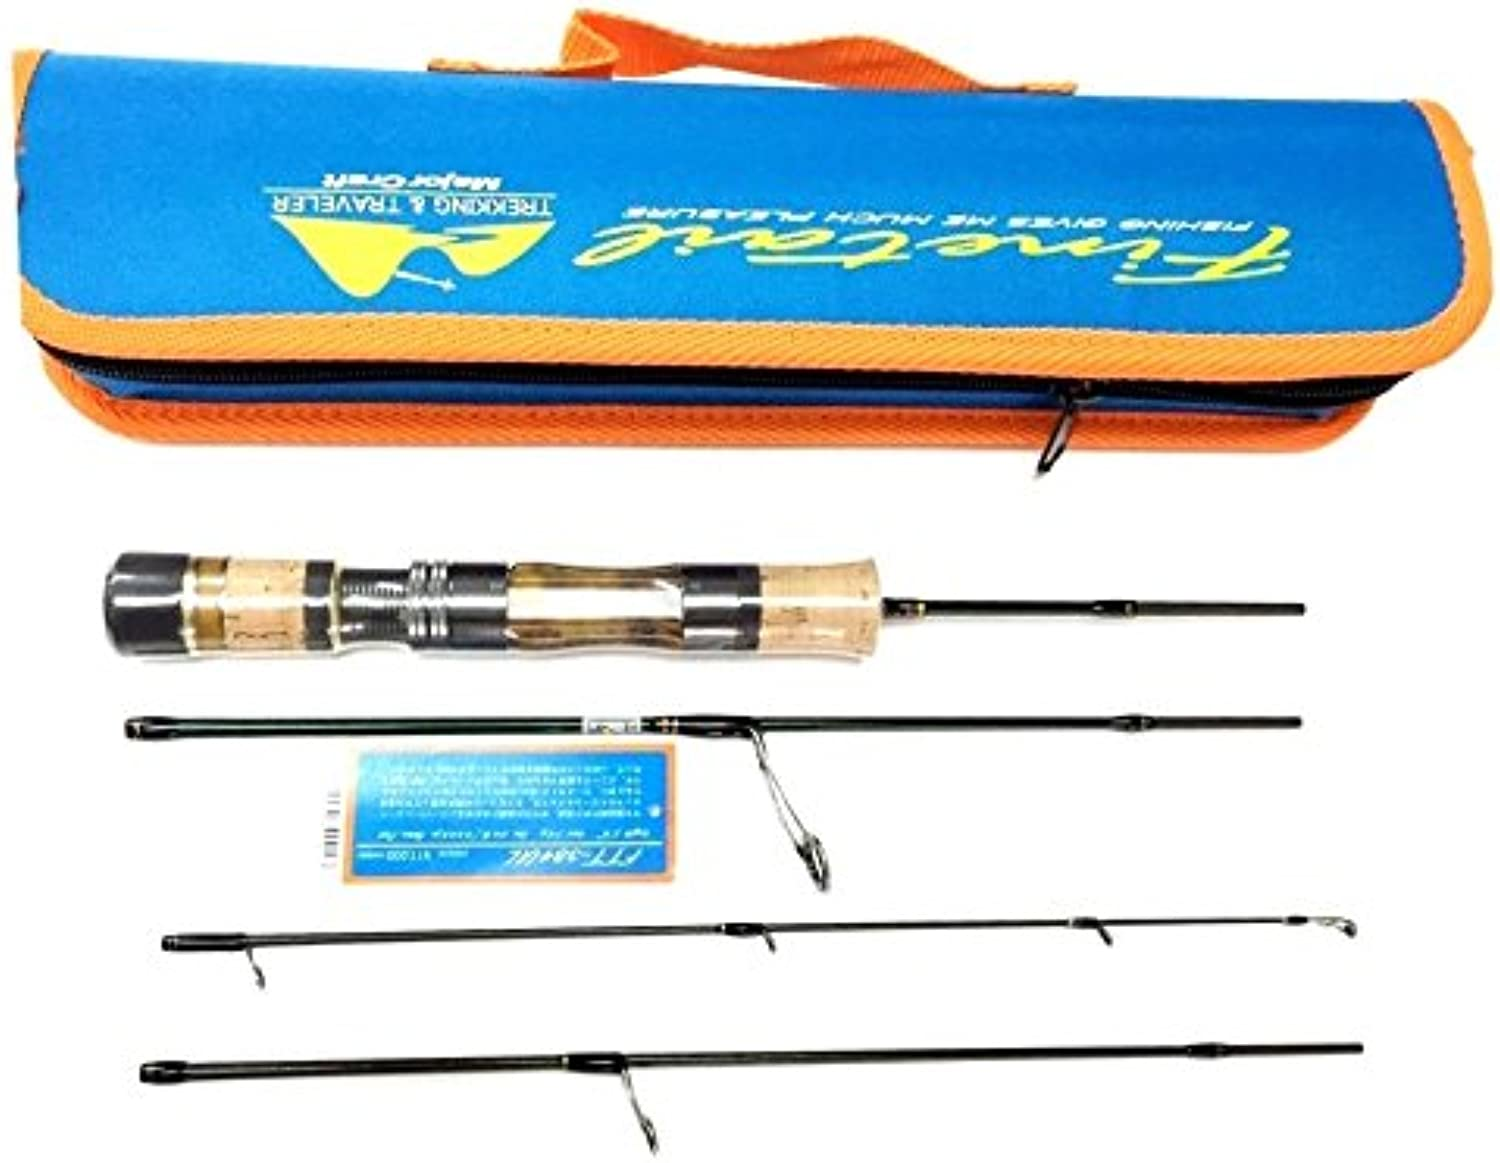 Major Craft Fine Tail Series Spinning Rod FTT 384 UL (0917)